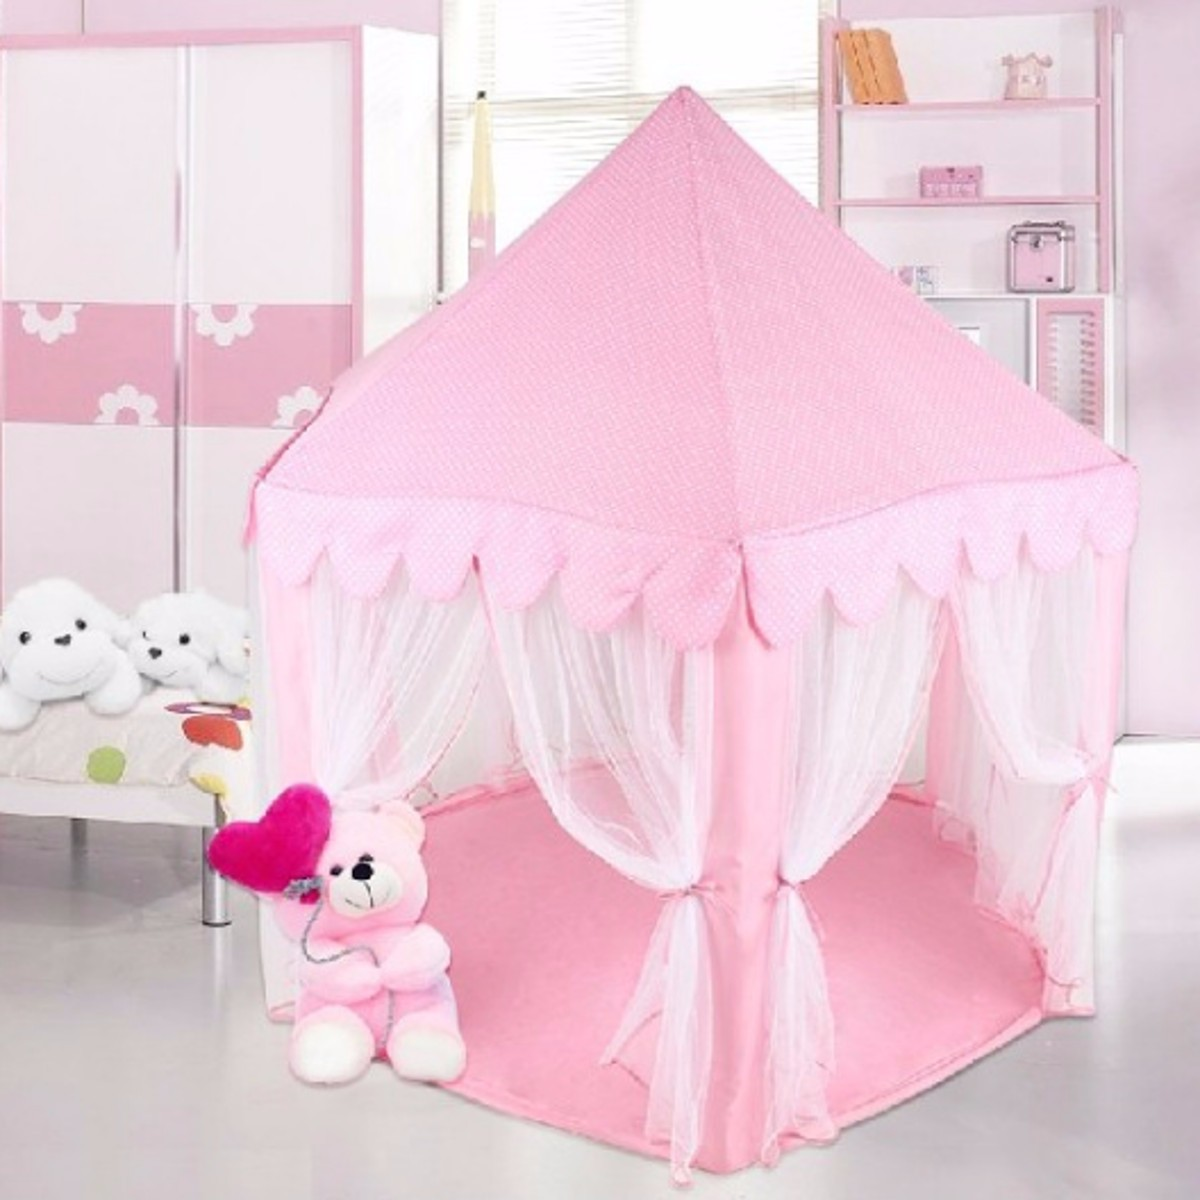 Portable Princess Castle Play Tent Activity Fairy House Fun Playhouse Beach Tent Baby playing Toy Gift For Children laptop keyboard for hp compaq presario c700 454954 001 notebook keyboard